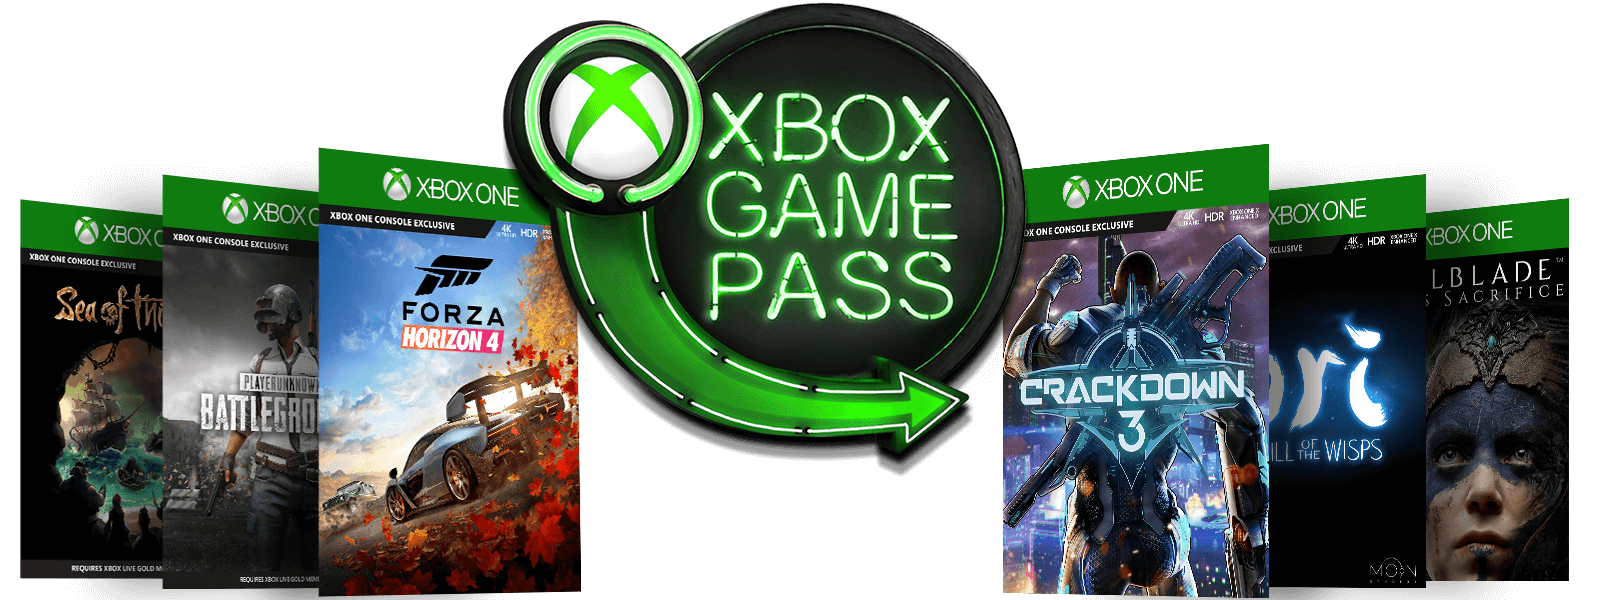 Az Xbox Game Pass neontáblája az Xbox gömb logójával, valamint egy zöld nyíllal, melyet hat játék vesz körül: Sea of Thieves, PLAYERUNKNOWN'S BATTLEGROUND, Forza Horizon 4, Crackdown 3, Ori and the Will of the Wisps, valamint Hellblade: Senua's Sacrifice